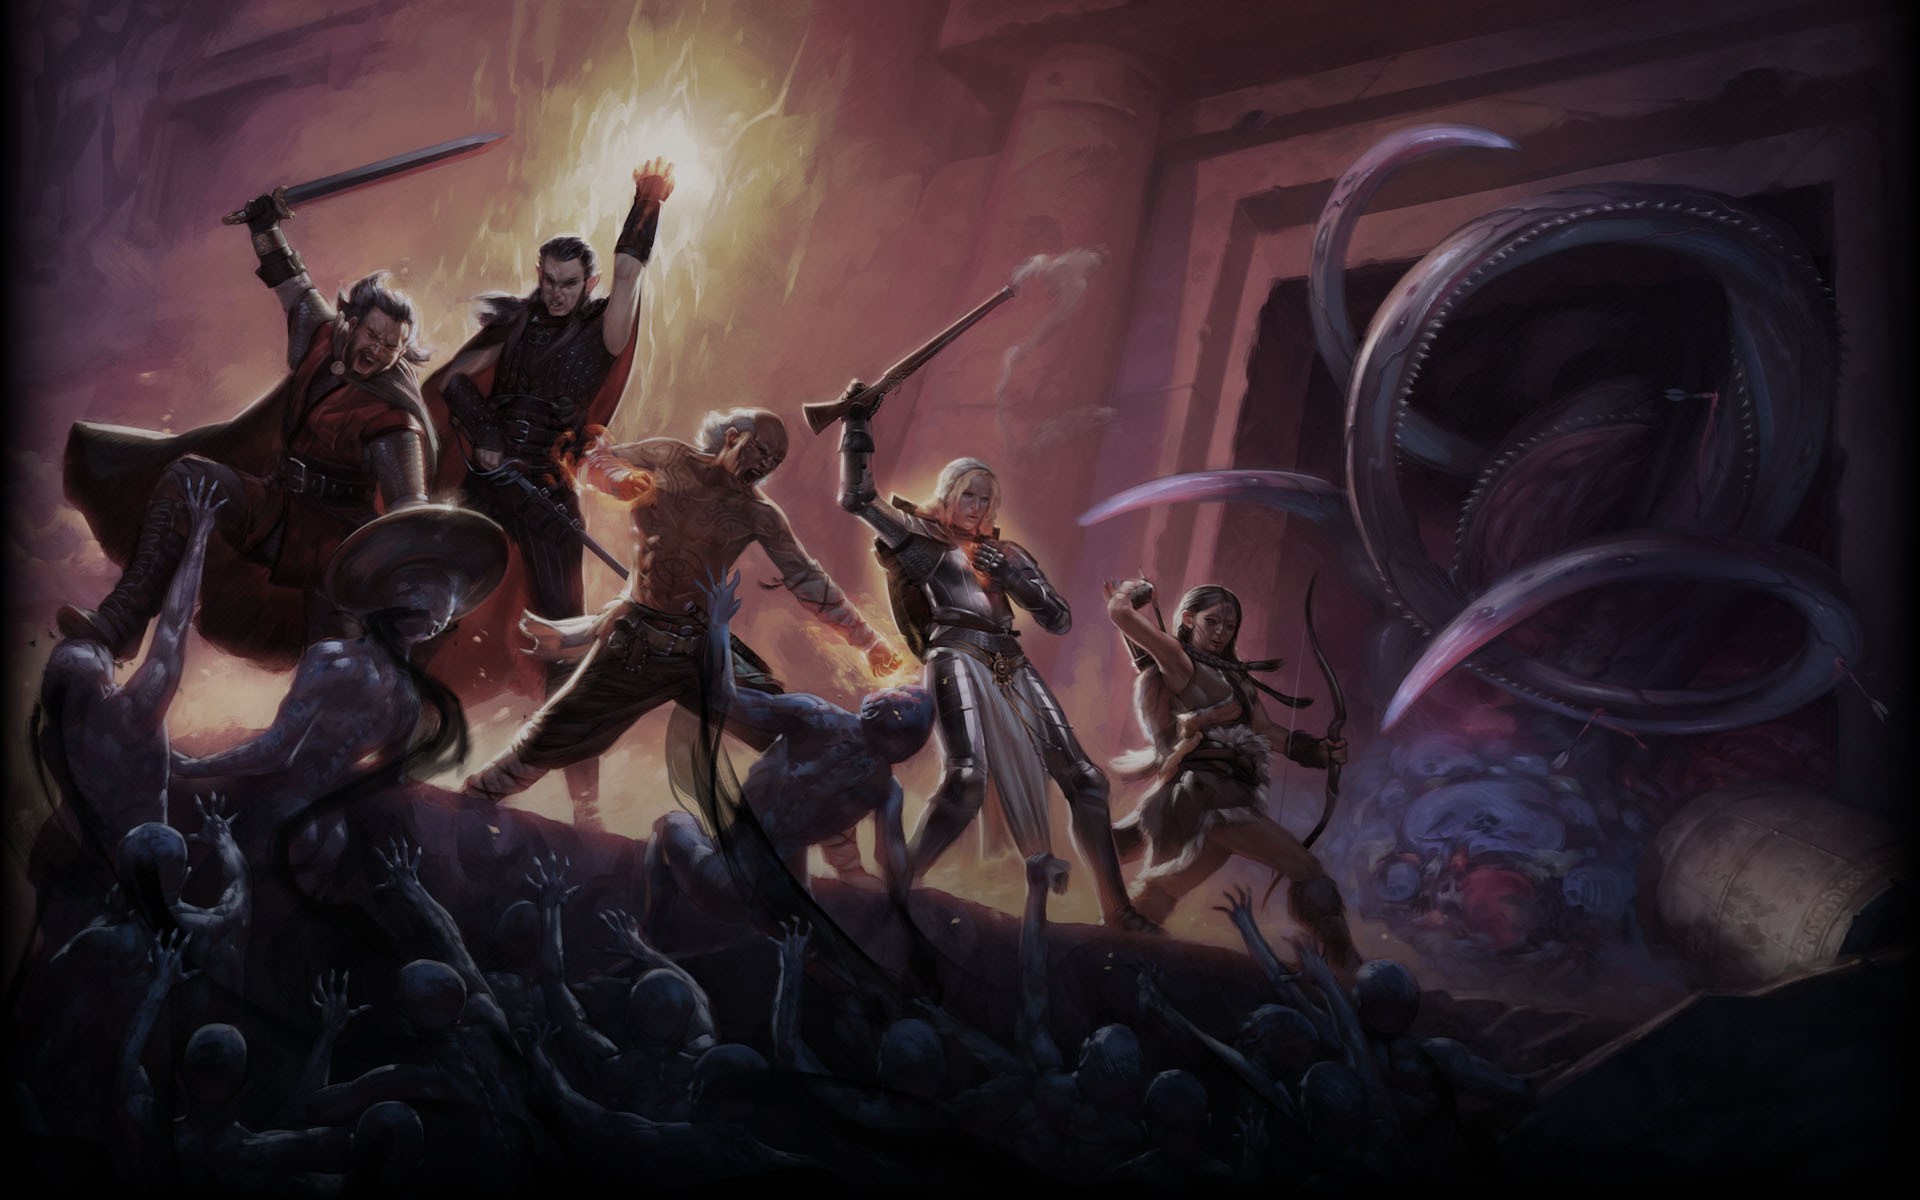 Several figures with swords and magic stand together as hordes of humanoid creatures approach them.